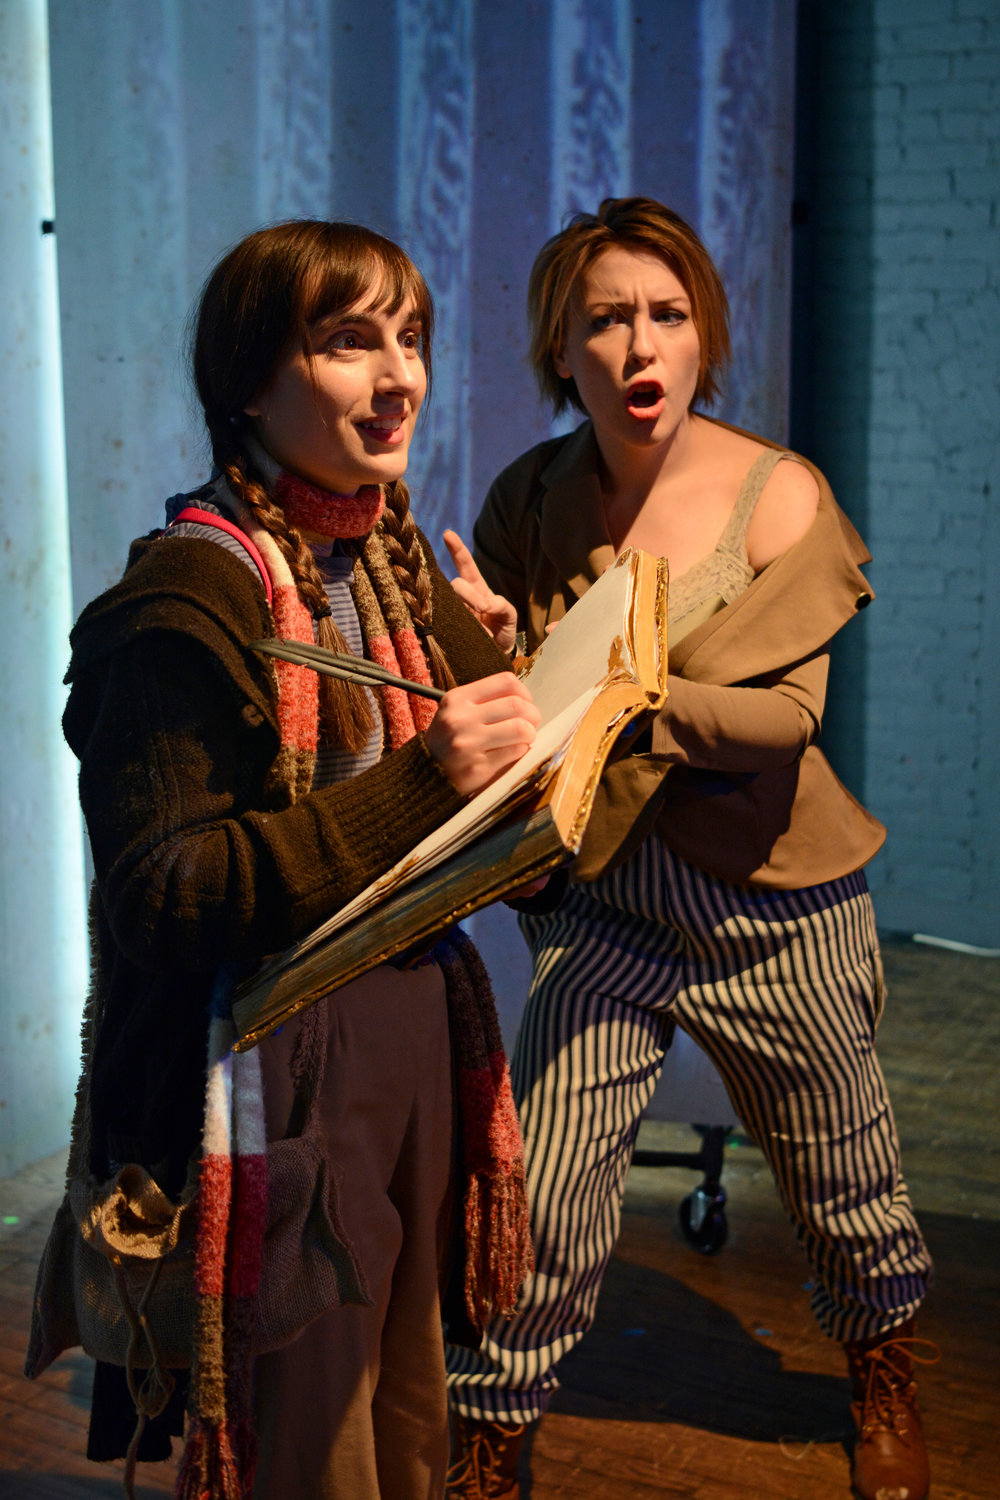 Jennifer Paldino as Isidora and Isabel Kruse as Thornley